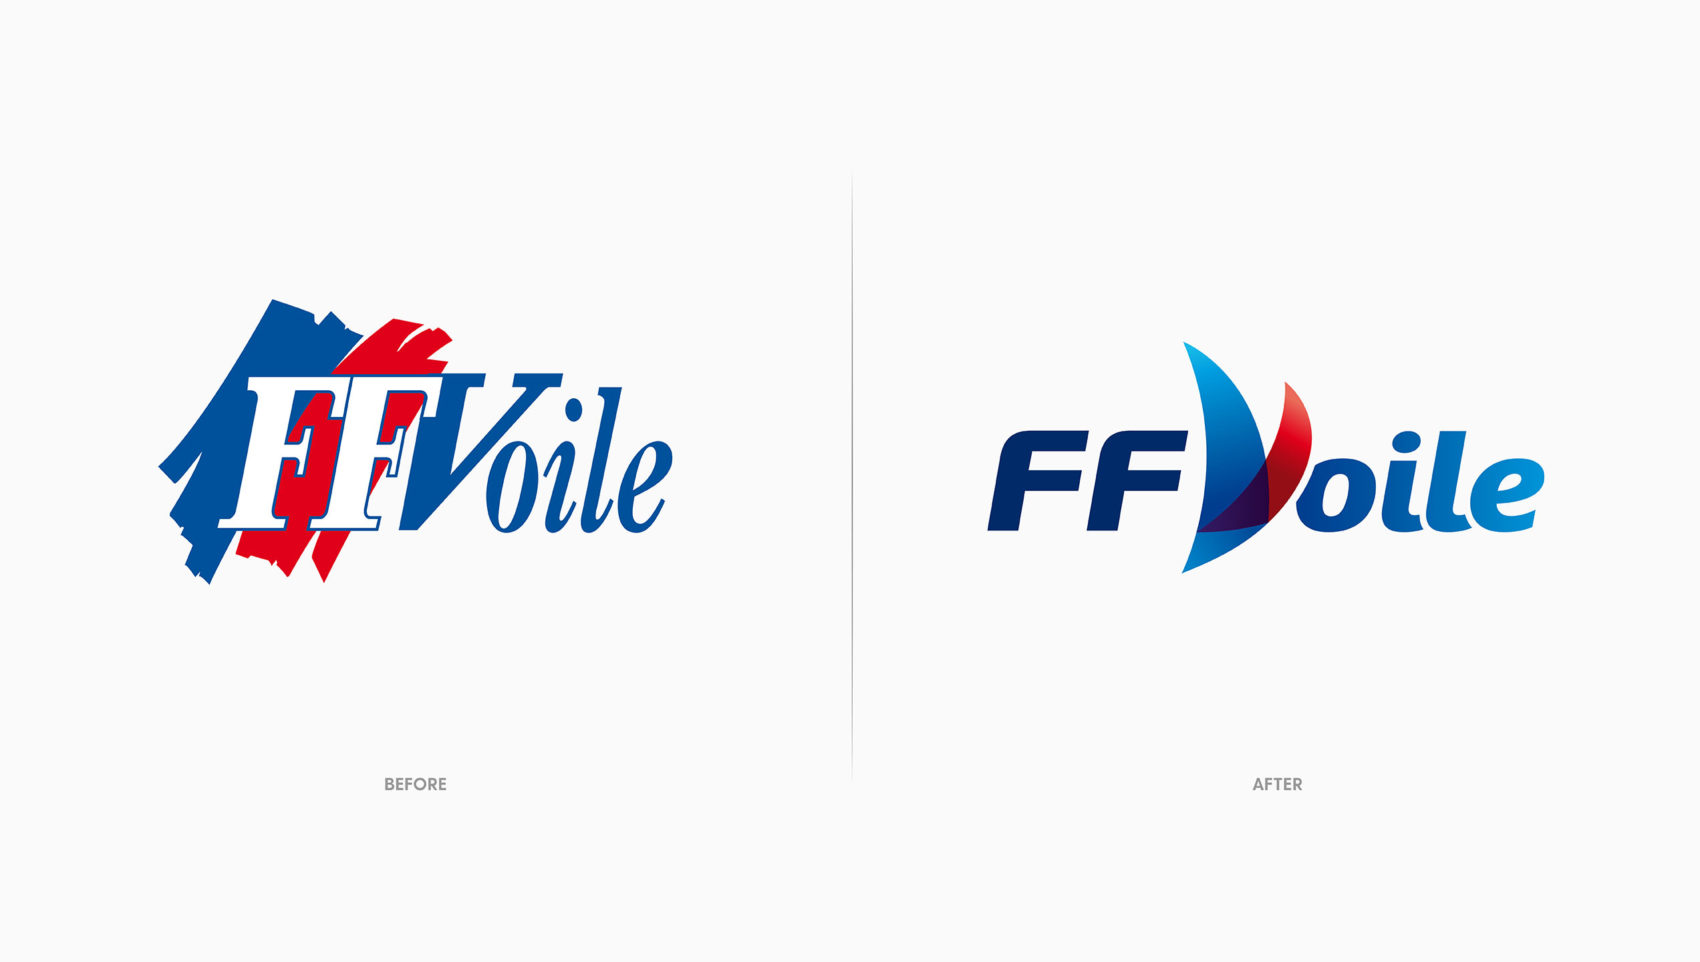 Projet_project_realisation_Federation_Francaise_french_Voile_english